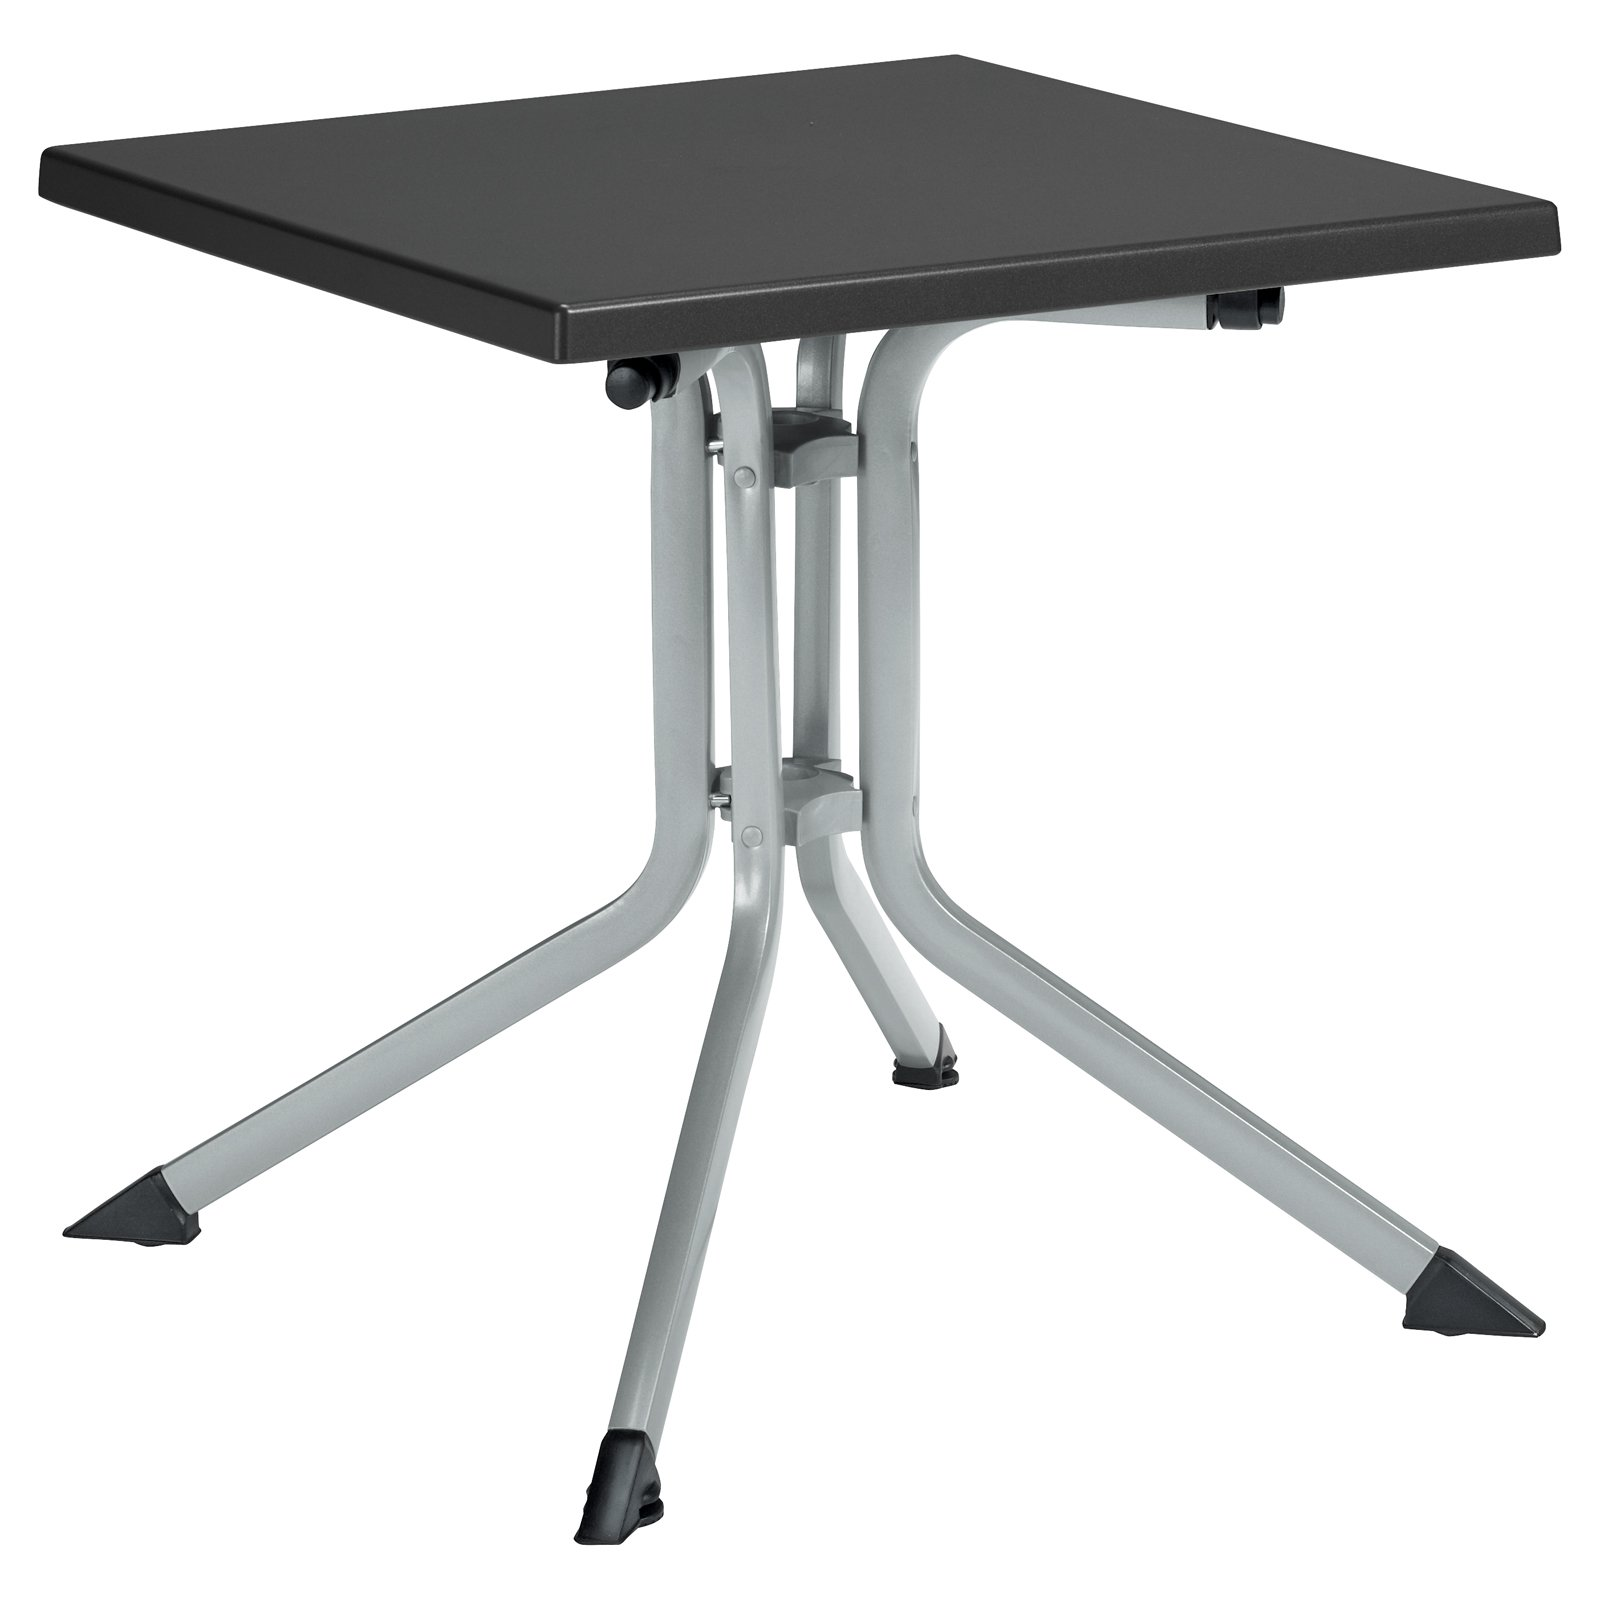 Kettler 32 in. Square Folding Table